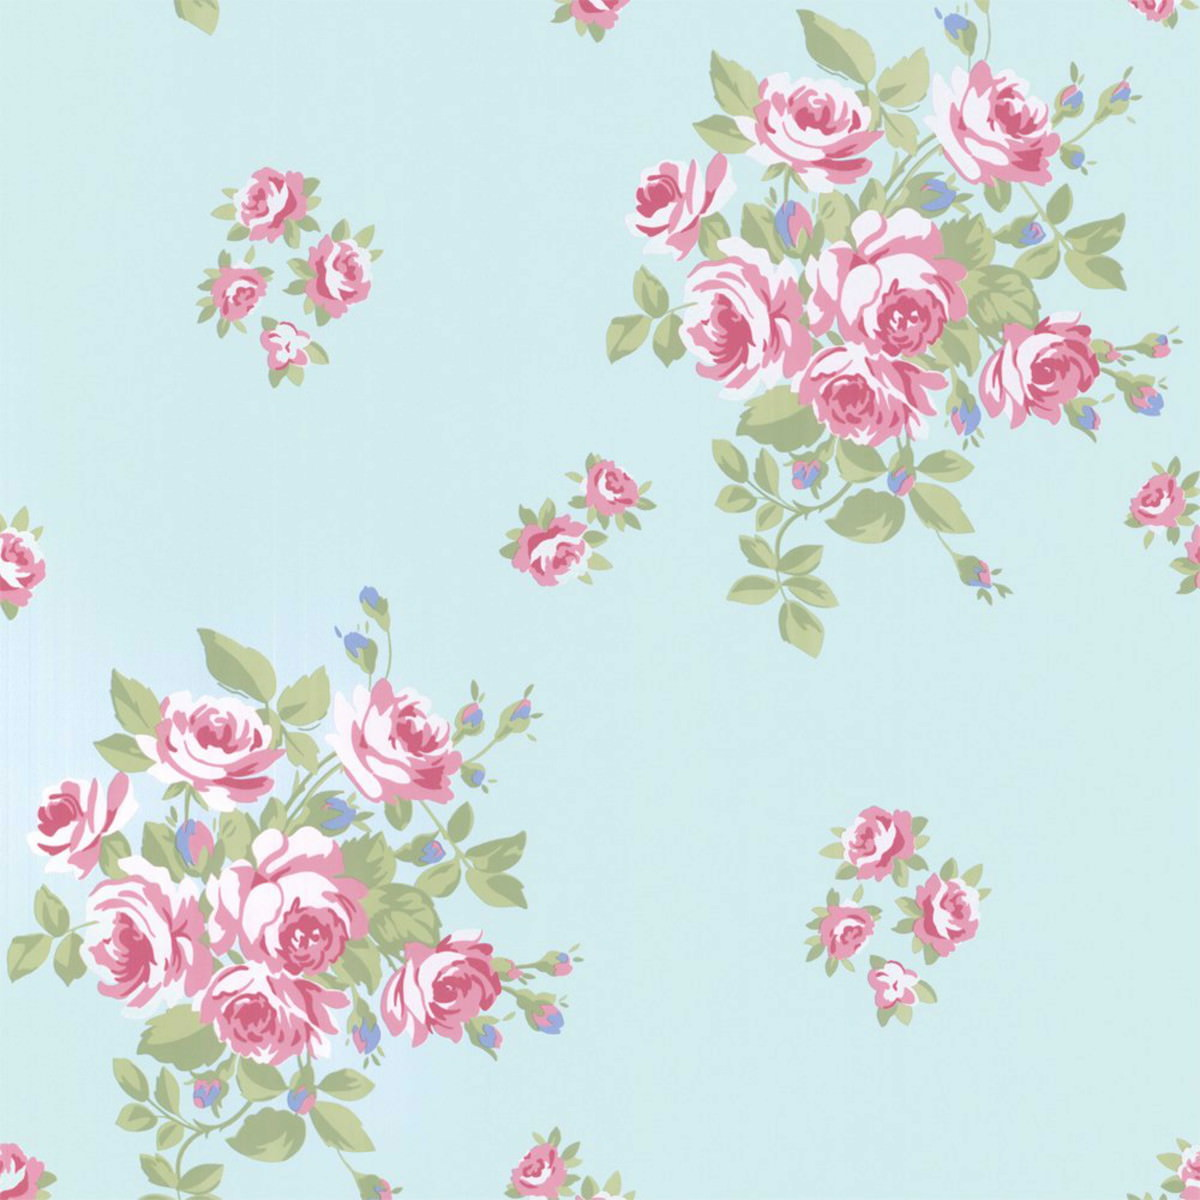 Floral Vintage Backgrounds 37